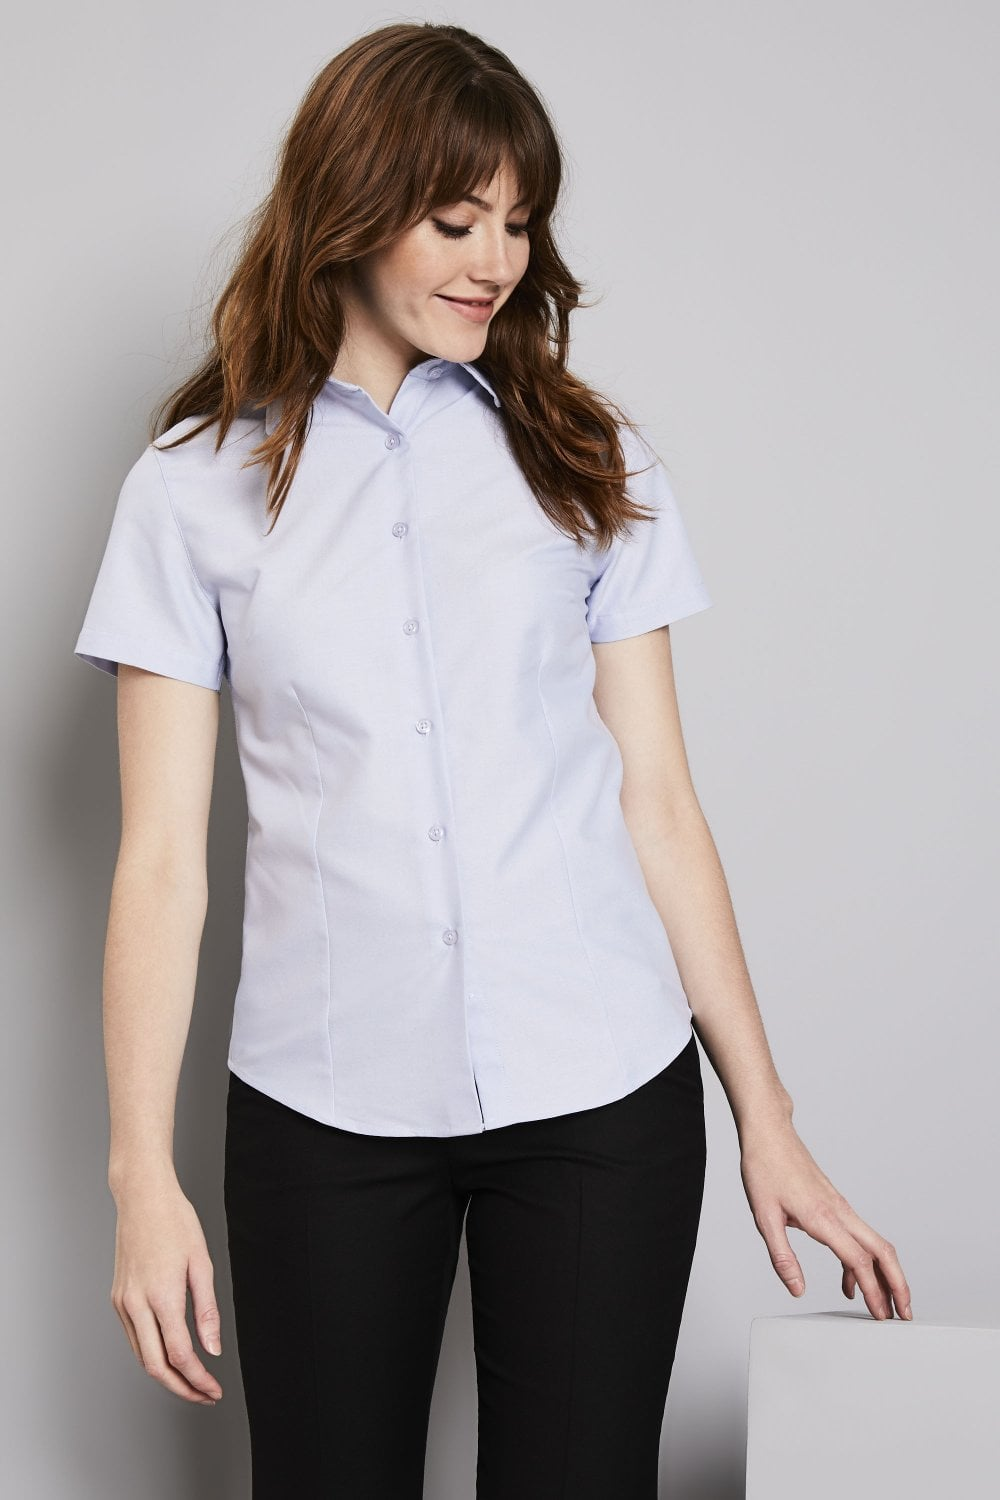 79e4dfbf0 Women's Oxford Short Sleeve Blouse - Simon Jersey Company Uniforms